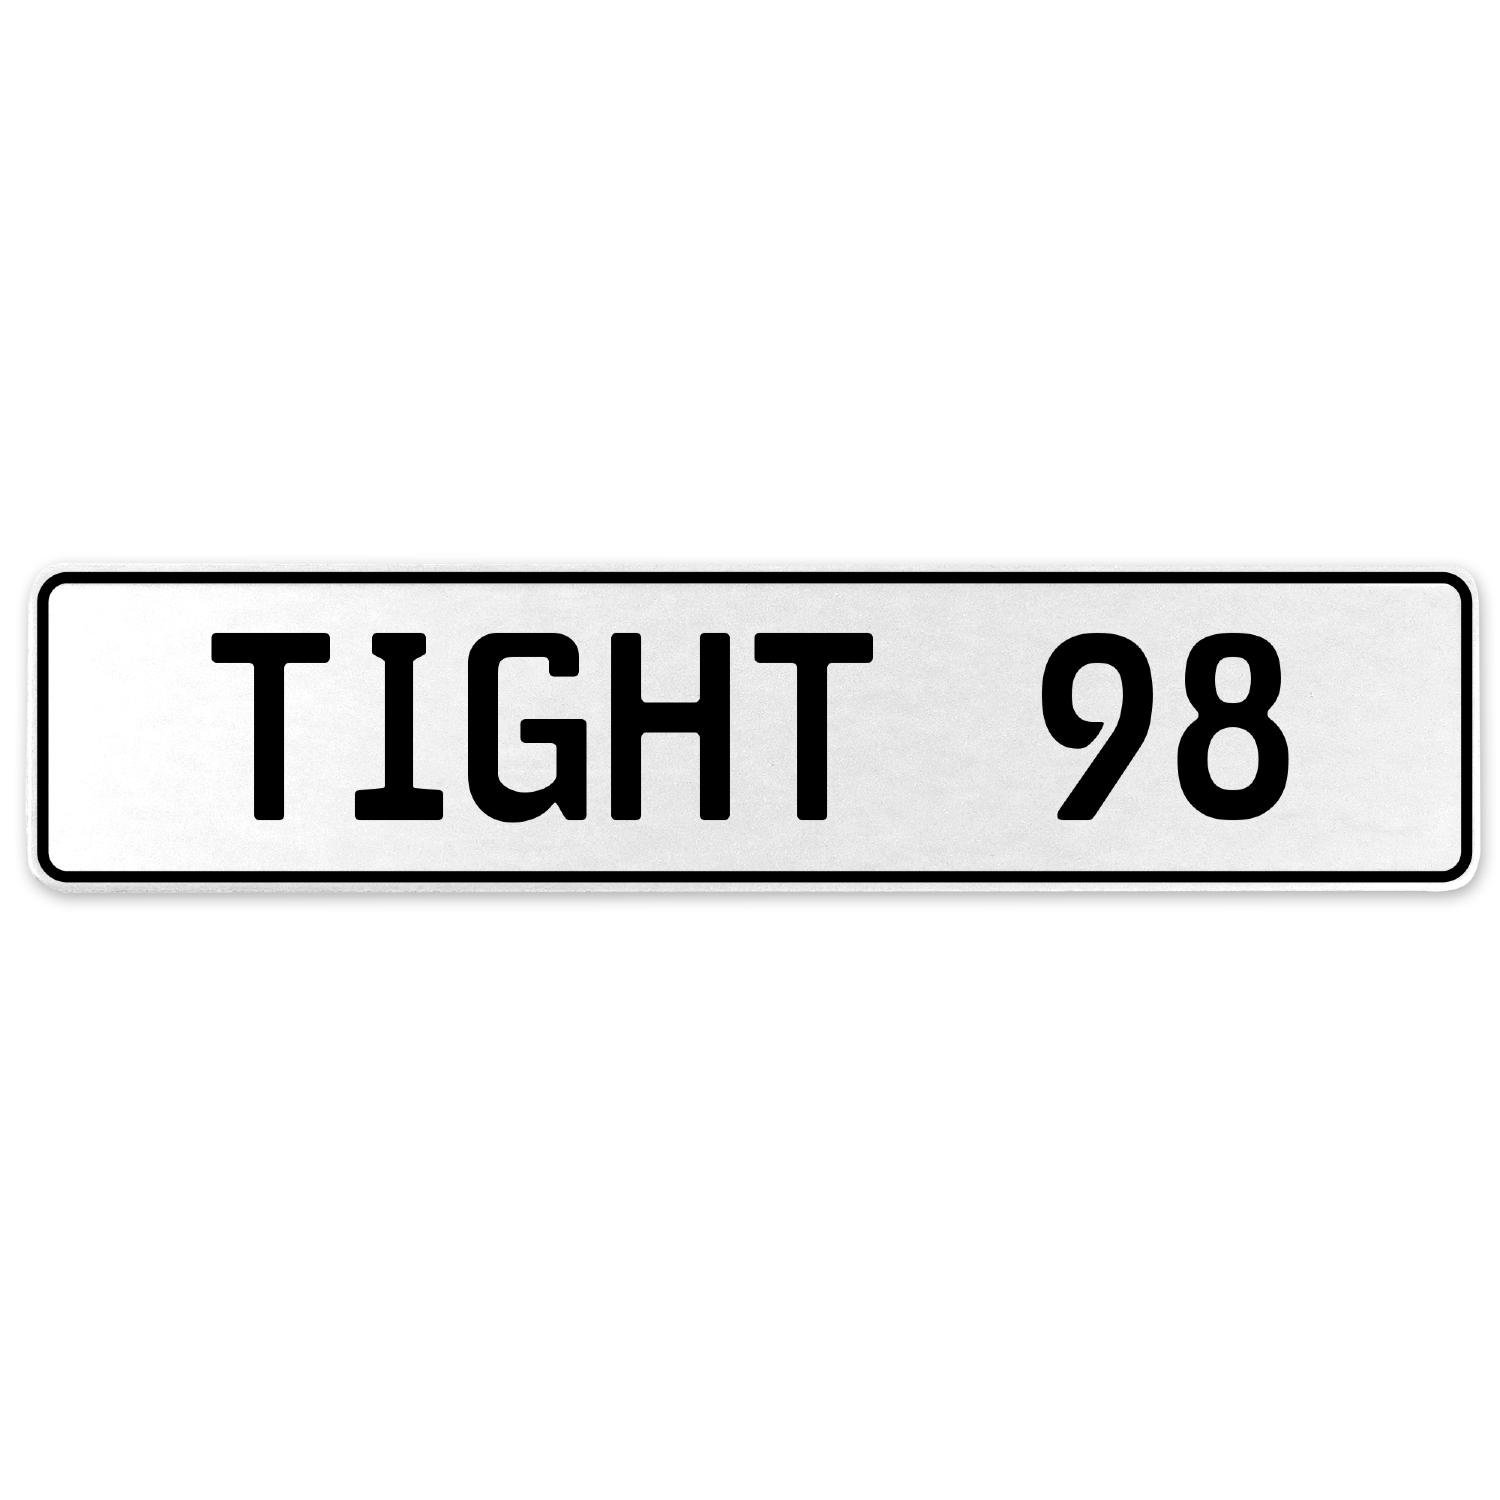 Vintage Parts 554794 Tight 98 White Stamped Aluminum European License Plate